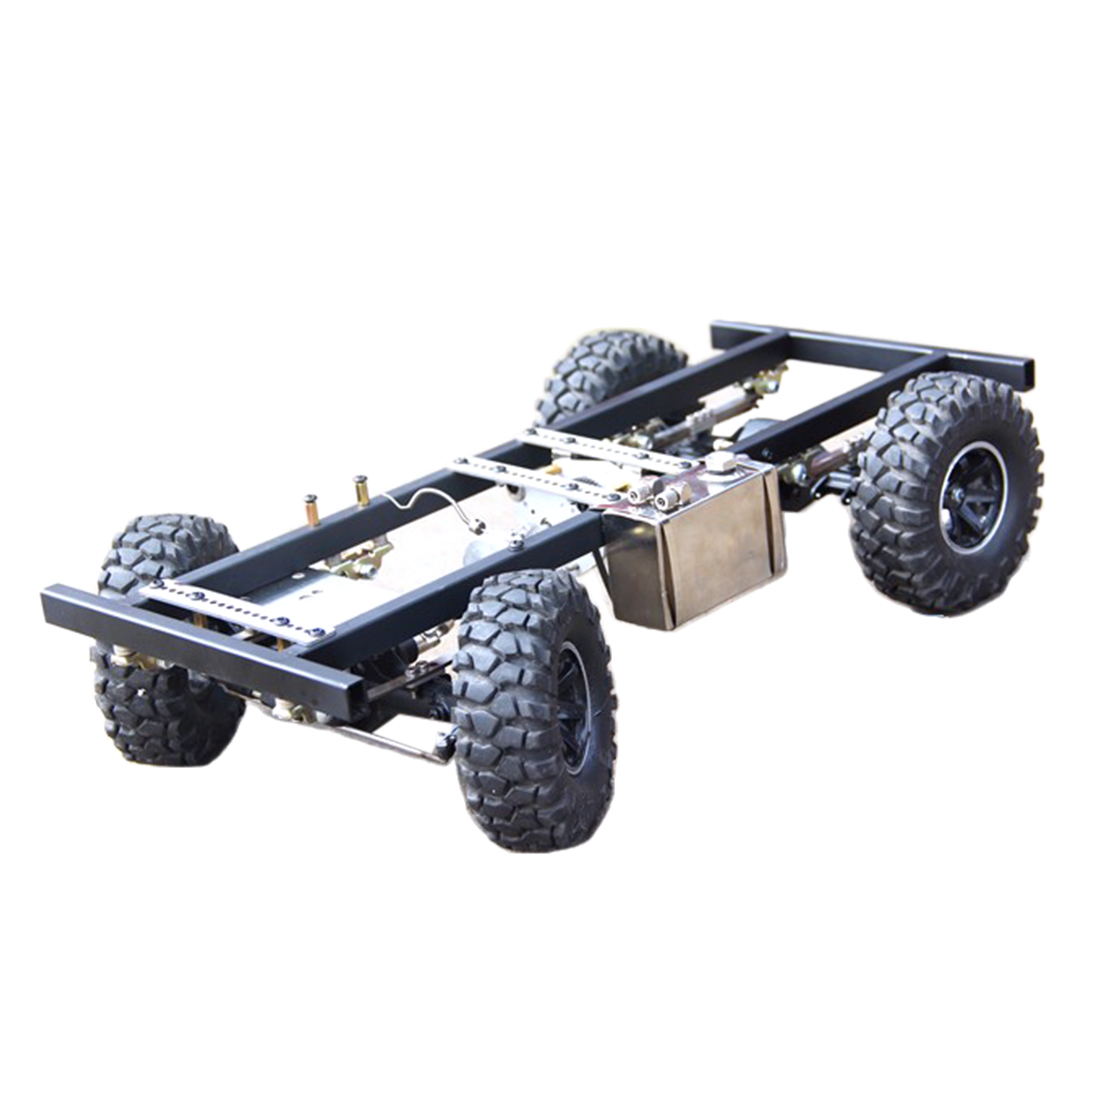 1:10 Model Car Chassis Frame Compatible With Toyan FS Series Engine (No Engine And Remote Control)